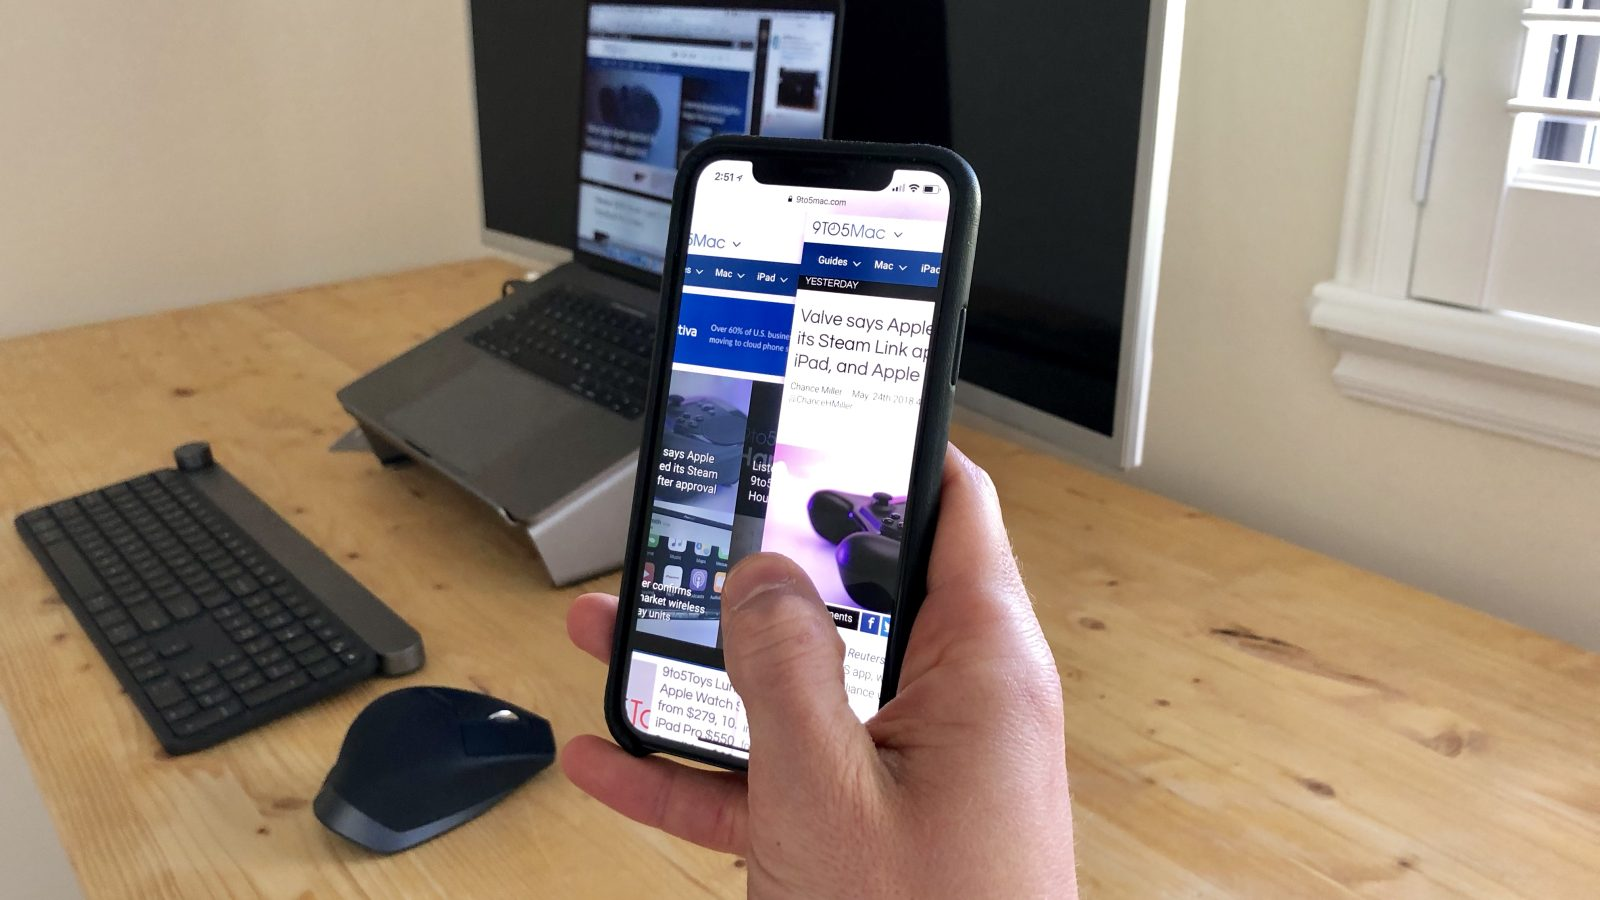 How to go back on iPhone - 9to5Mac